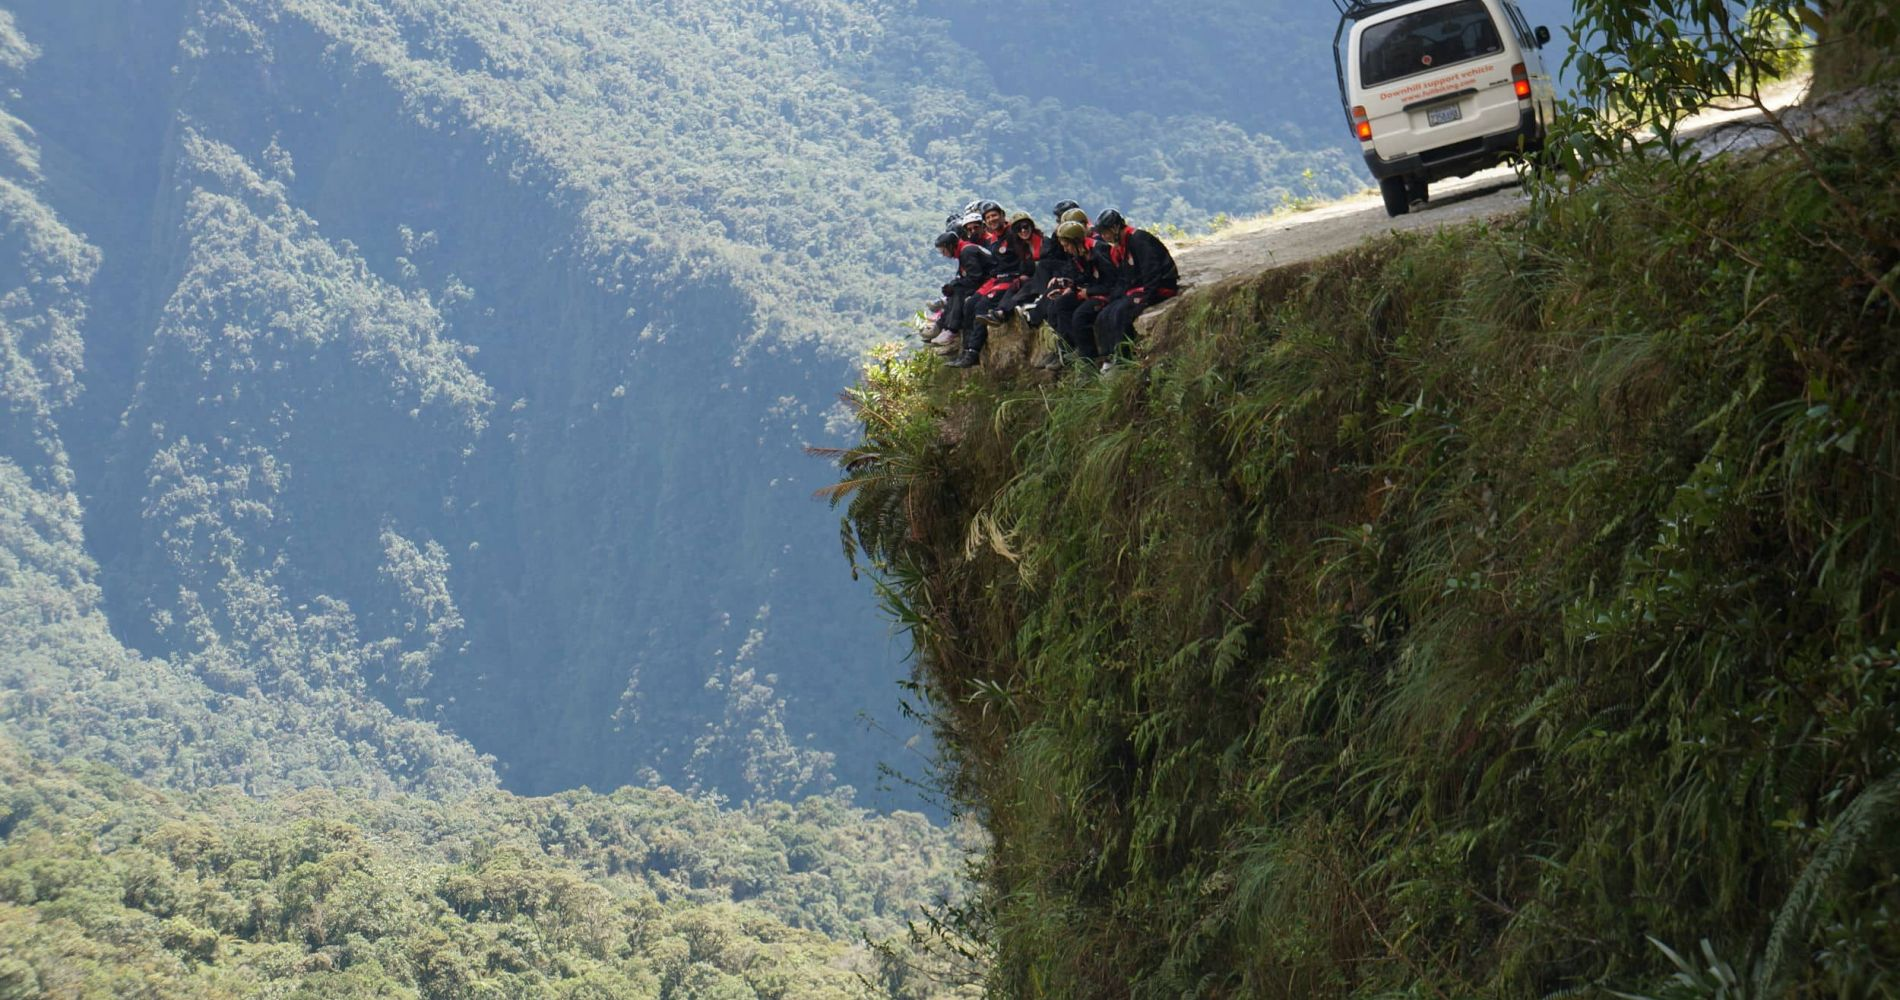 Mountain Biking down The World's Most Dangerous Road in Bolivia